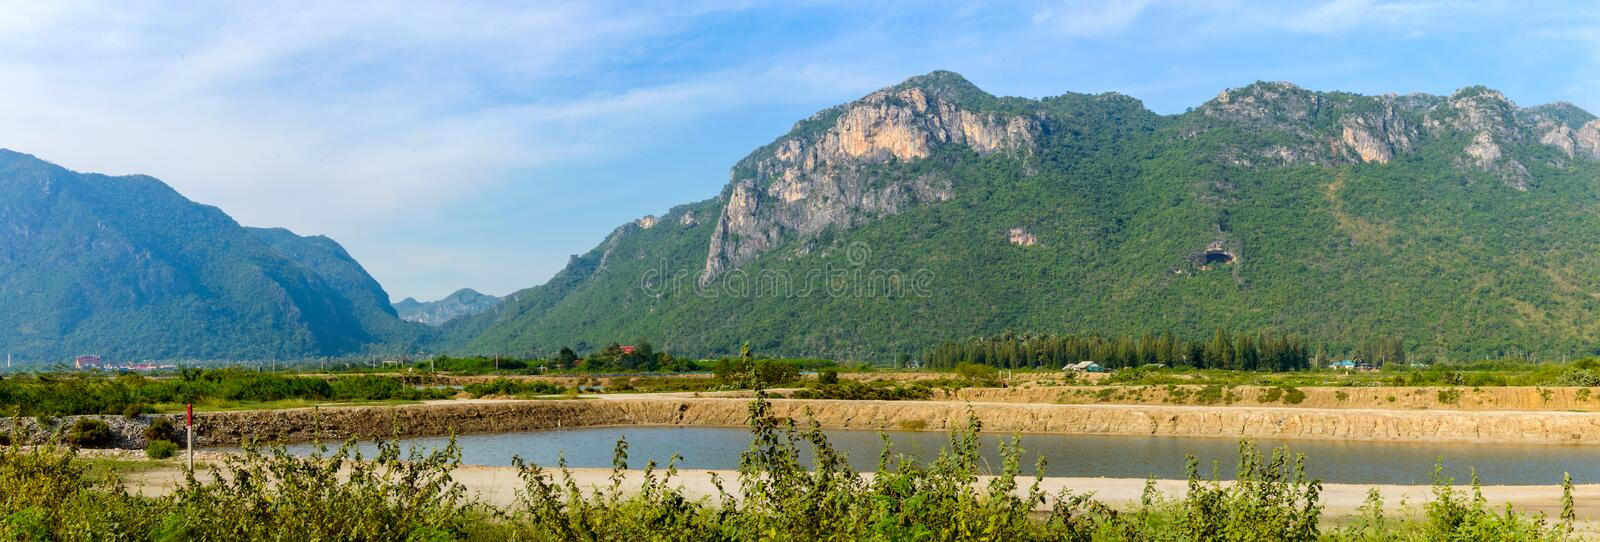 Landscape with rivers and hills in the Khao Sam Roi Yot National park south of hua hin in thailand. The landscape with rivers and hills in the Khao Sam Roi Yot stock photography